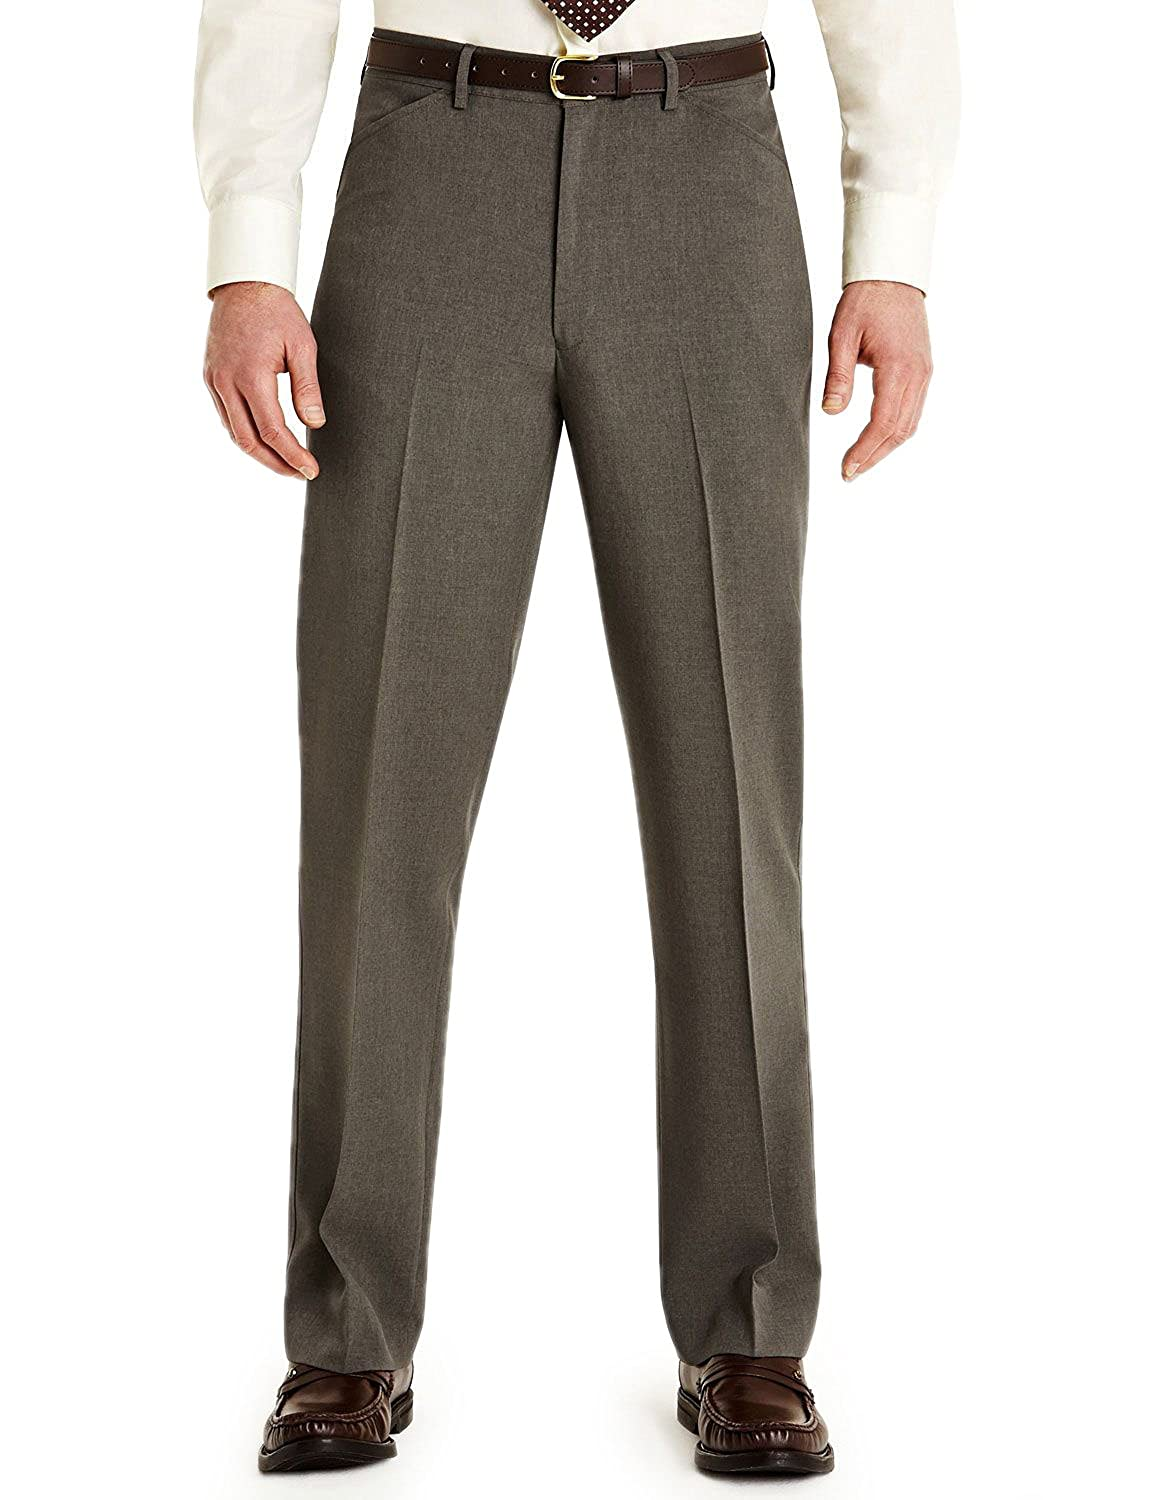 FARAH Mens Frogmouth Pocket Formal Smart Trouser Pants